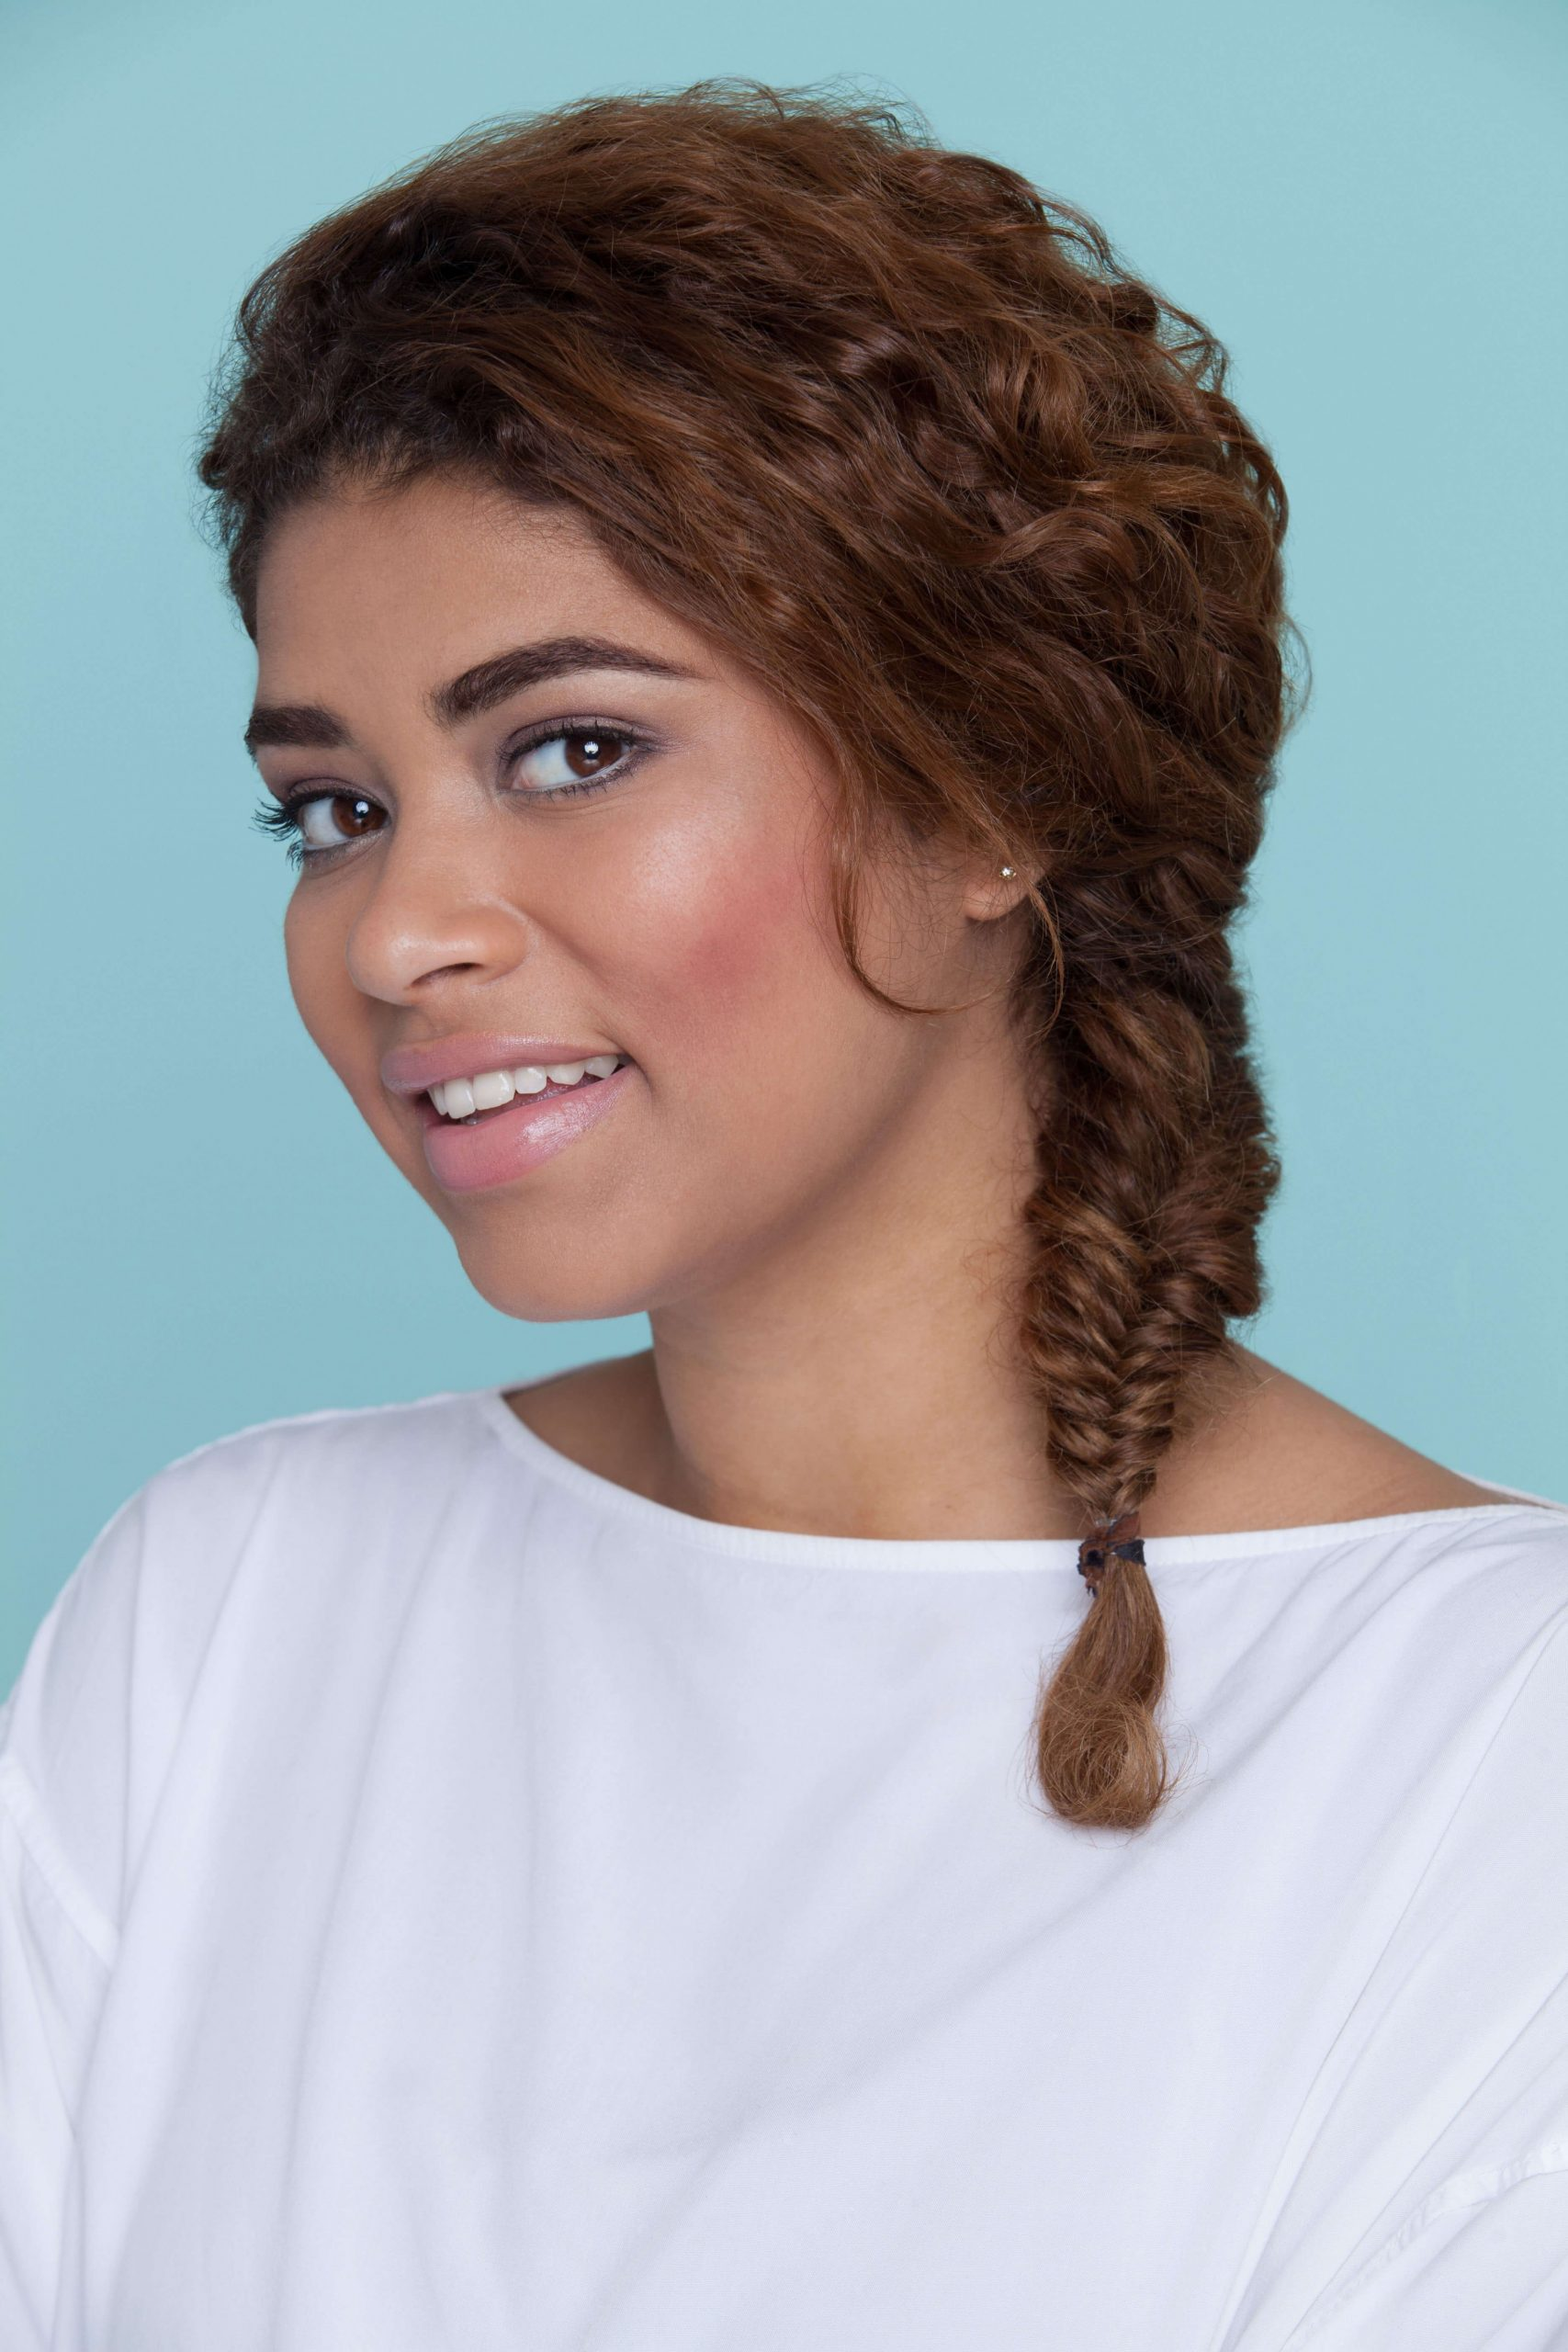 8 Easy And Modern Hairstyles For Thick Curly Hair Hairstyles For Thick Curly Hair